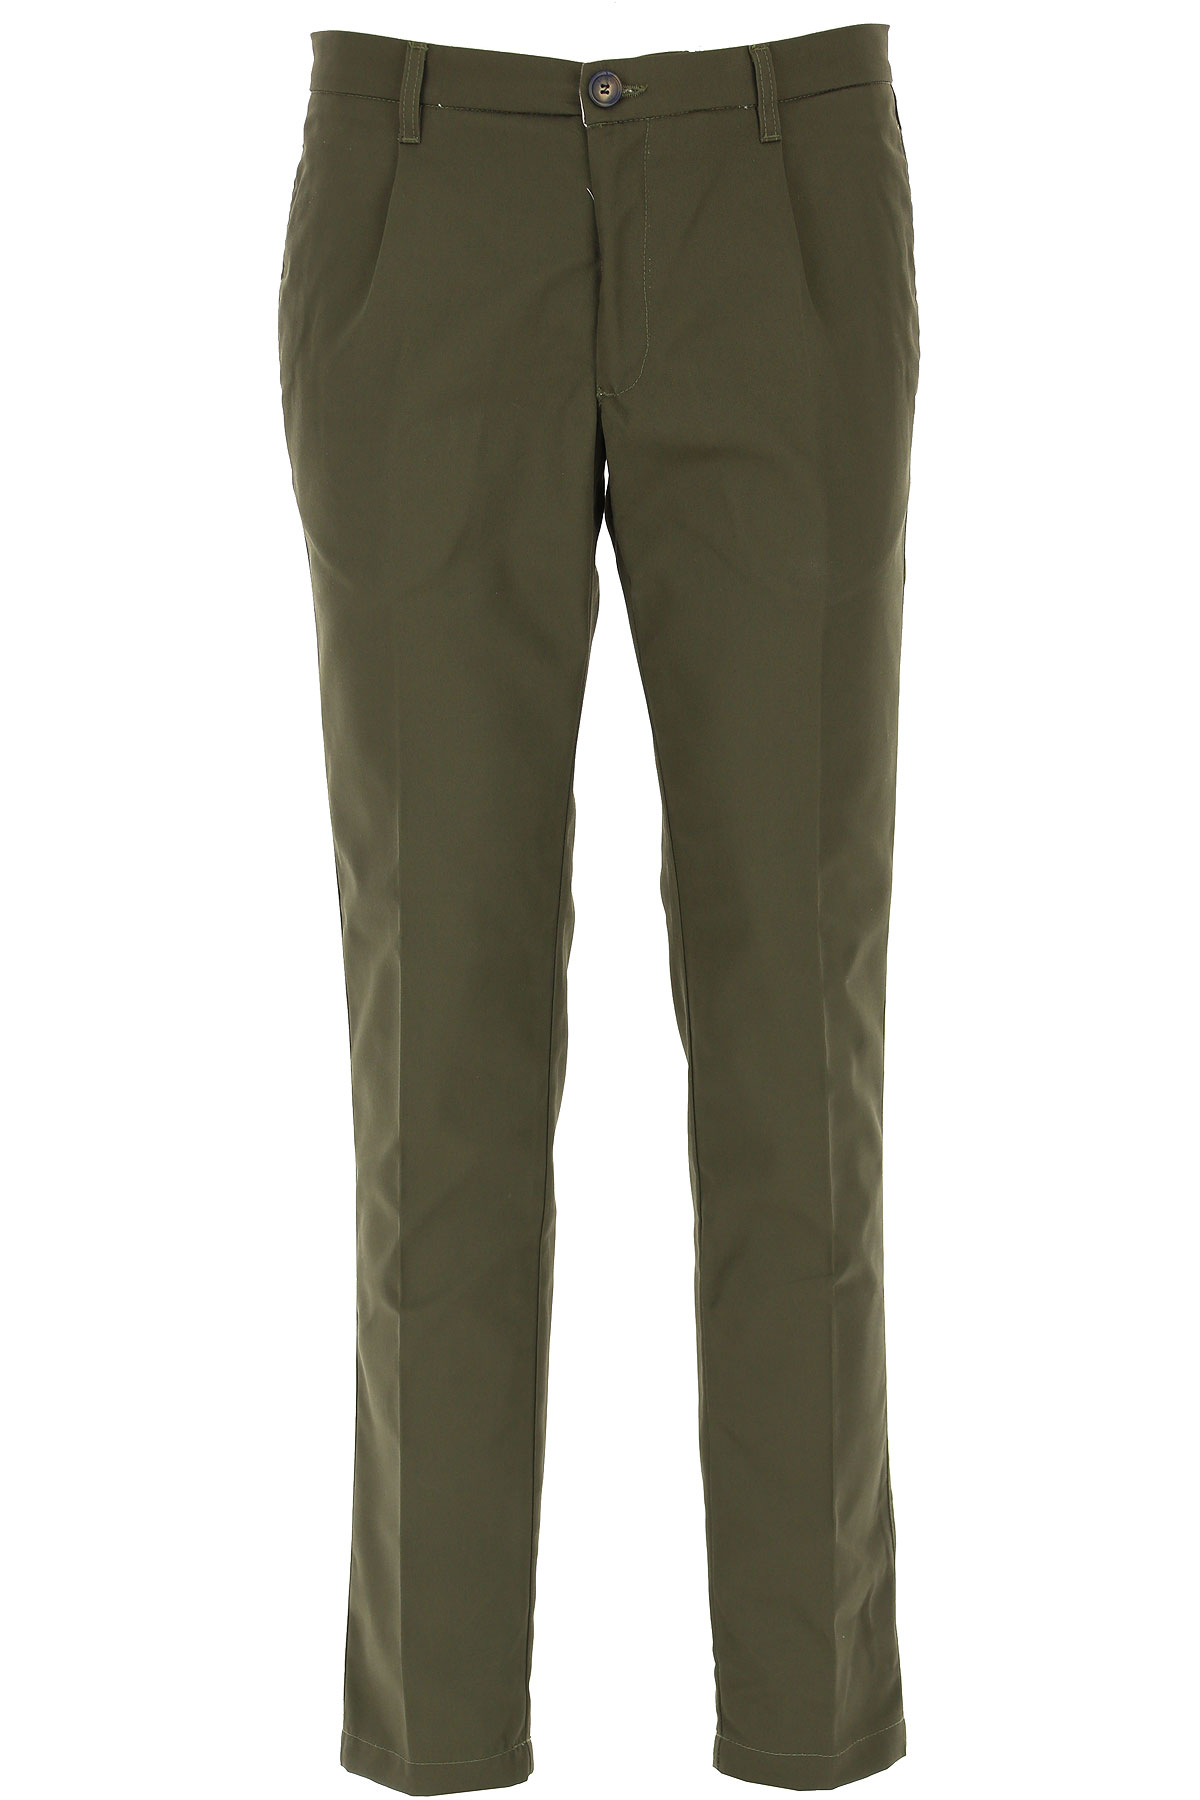 J.W. Brine Pants for Men, Grey, Cotton, 2019, 30 34 36 38